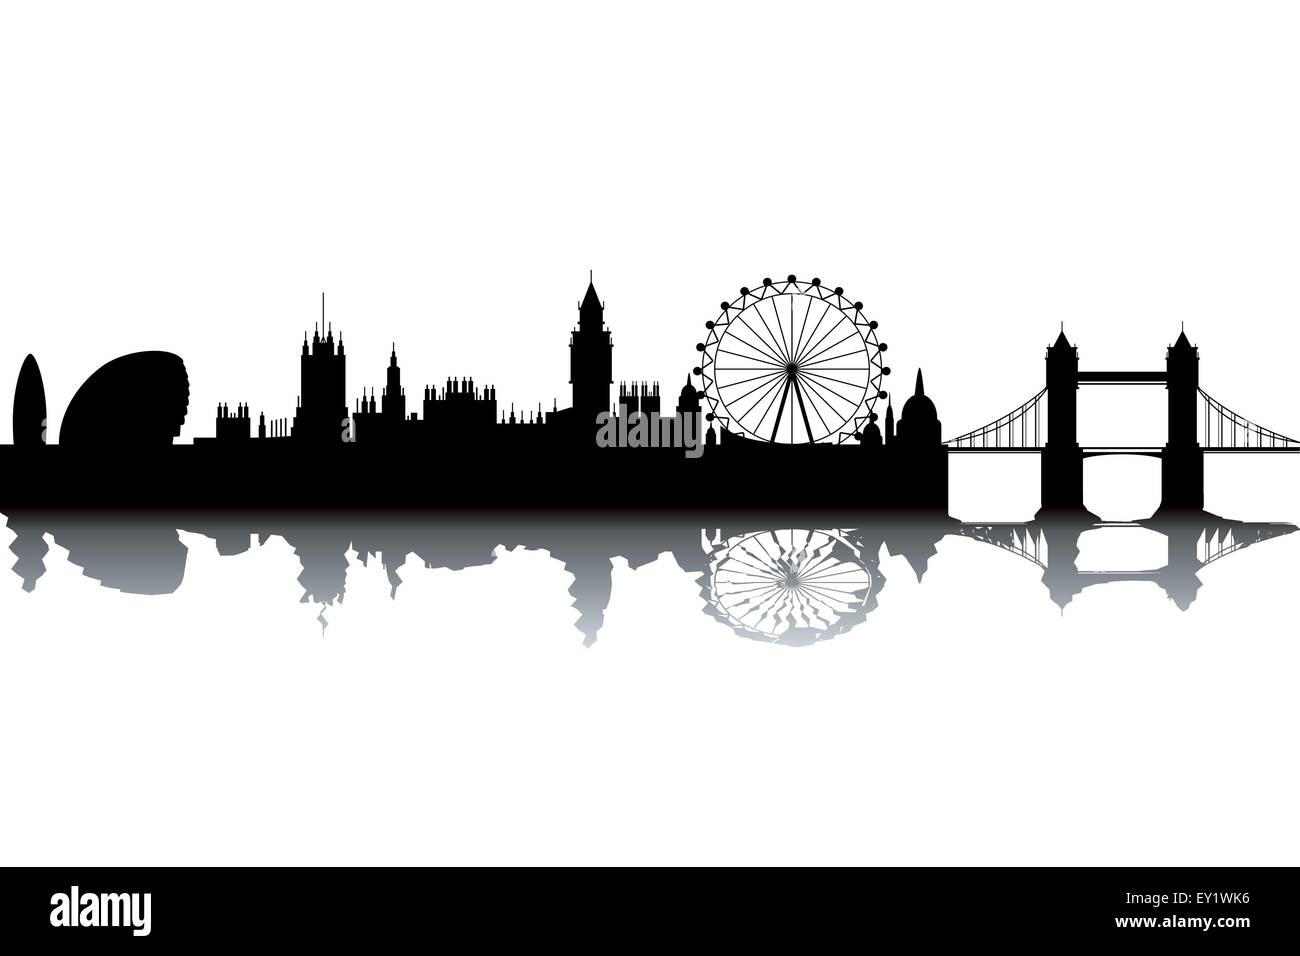 london skyline schwarz wei vektor illustration vektor abbildung bild 85479274 alamy. Black Bedroom Furniture Sets. Home Design Ideas